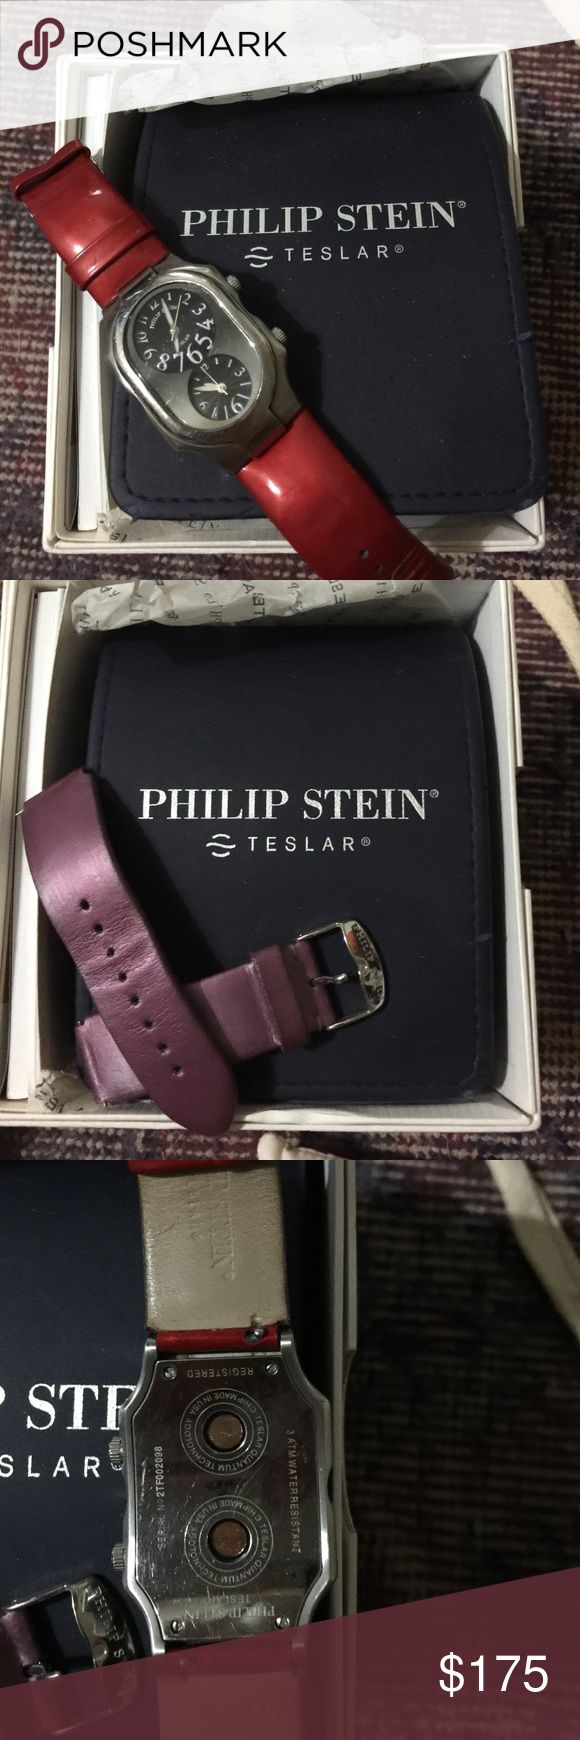 Philip Stein women's large face watch w/2 straps The amazing healing Philip Stein watch, back face with 2 paid of adjustable straps. Copper healing energy, box and instruction manual. These straps are short but ordering extra straps and putting them on yourself is easy. Needs a battery., Philip Stein Teslar Accessories Watches